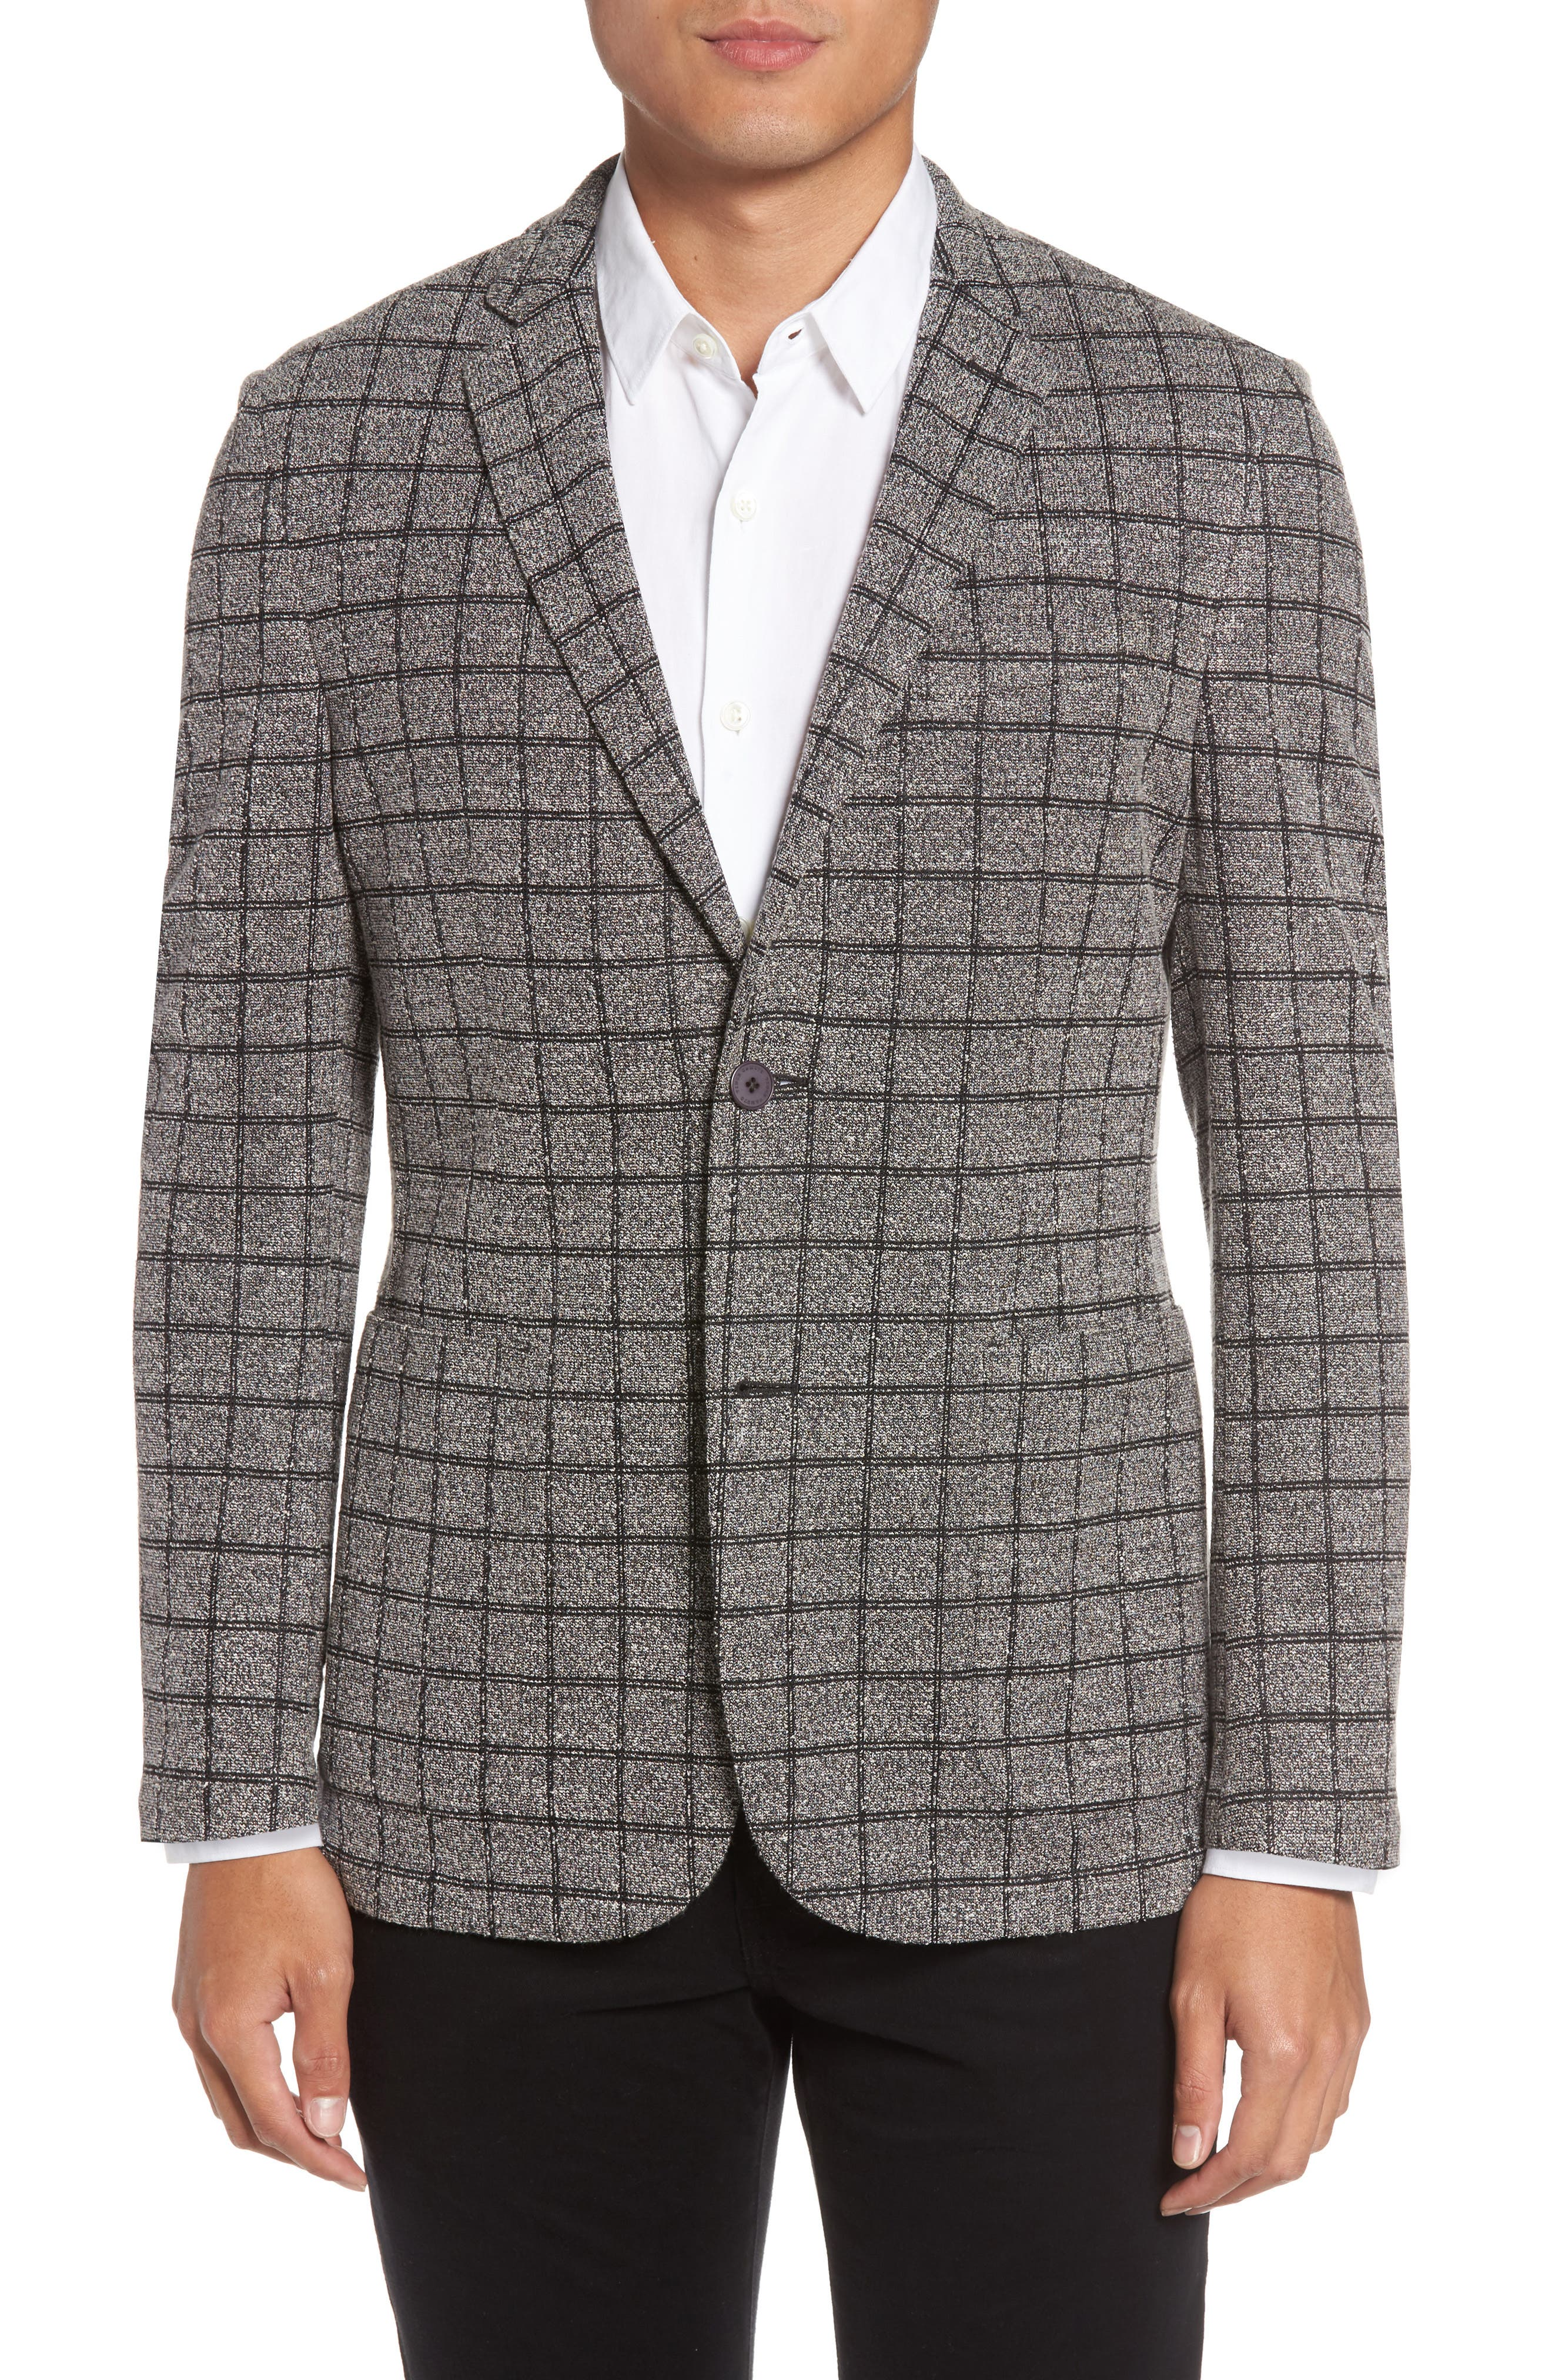 Main Image - Vince Camuto Del Aria Slim Fit Check Knit Jacket